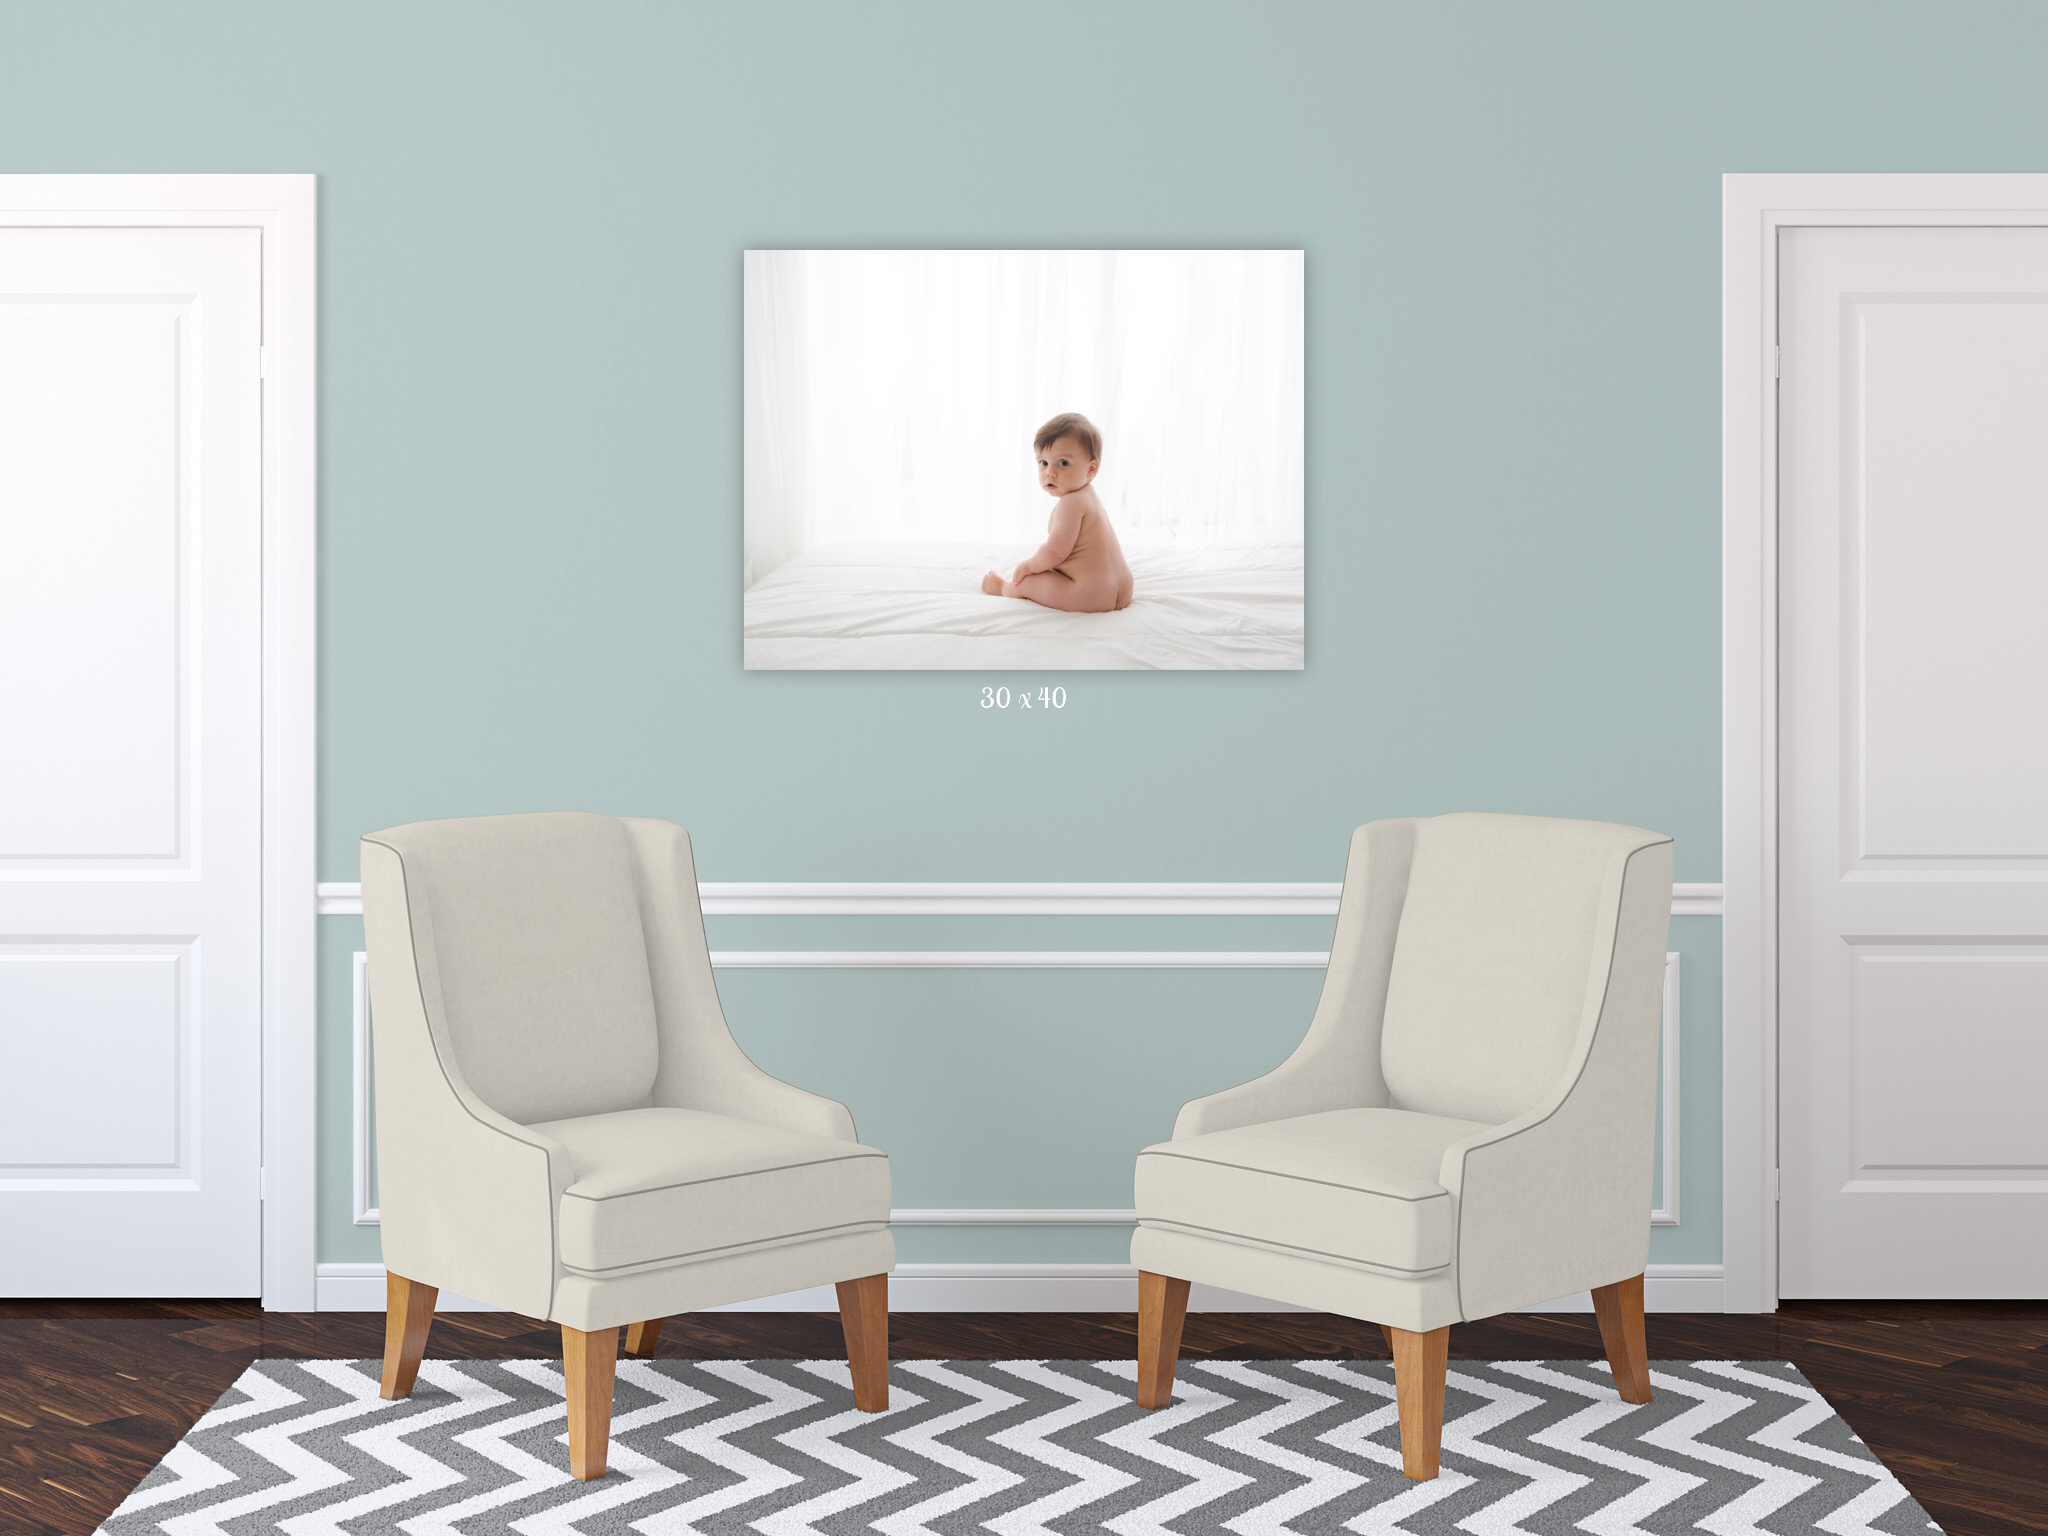 hallway wall gallery of a baby boy in white